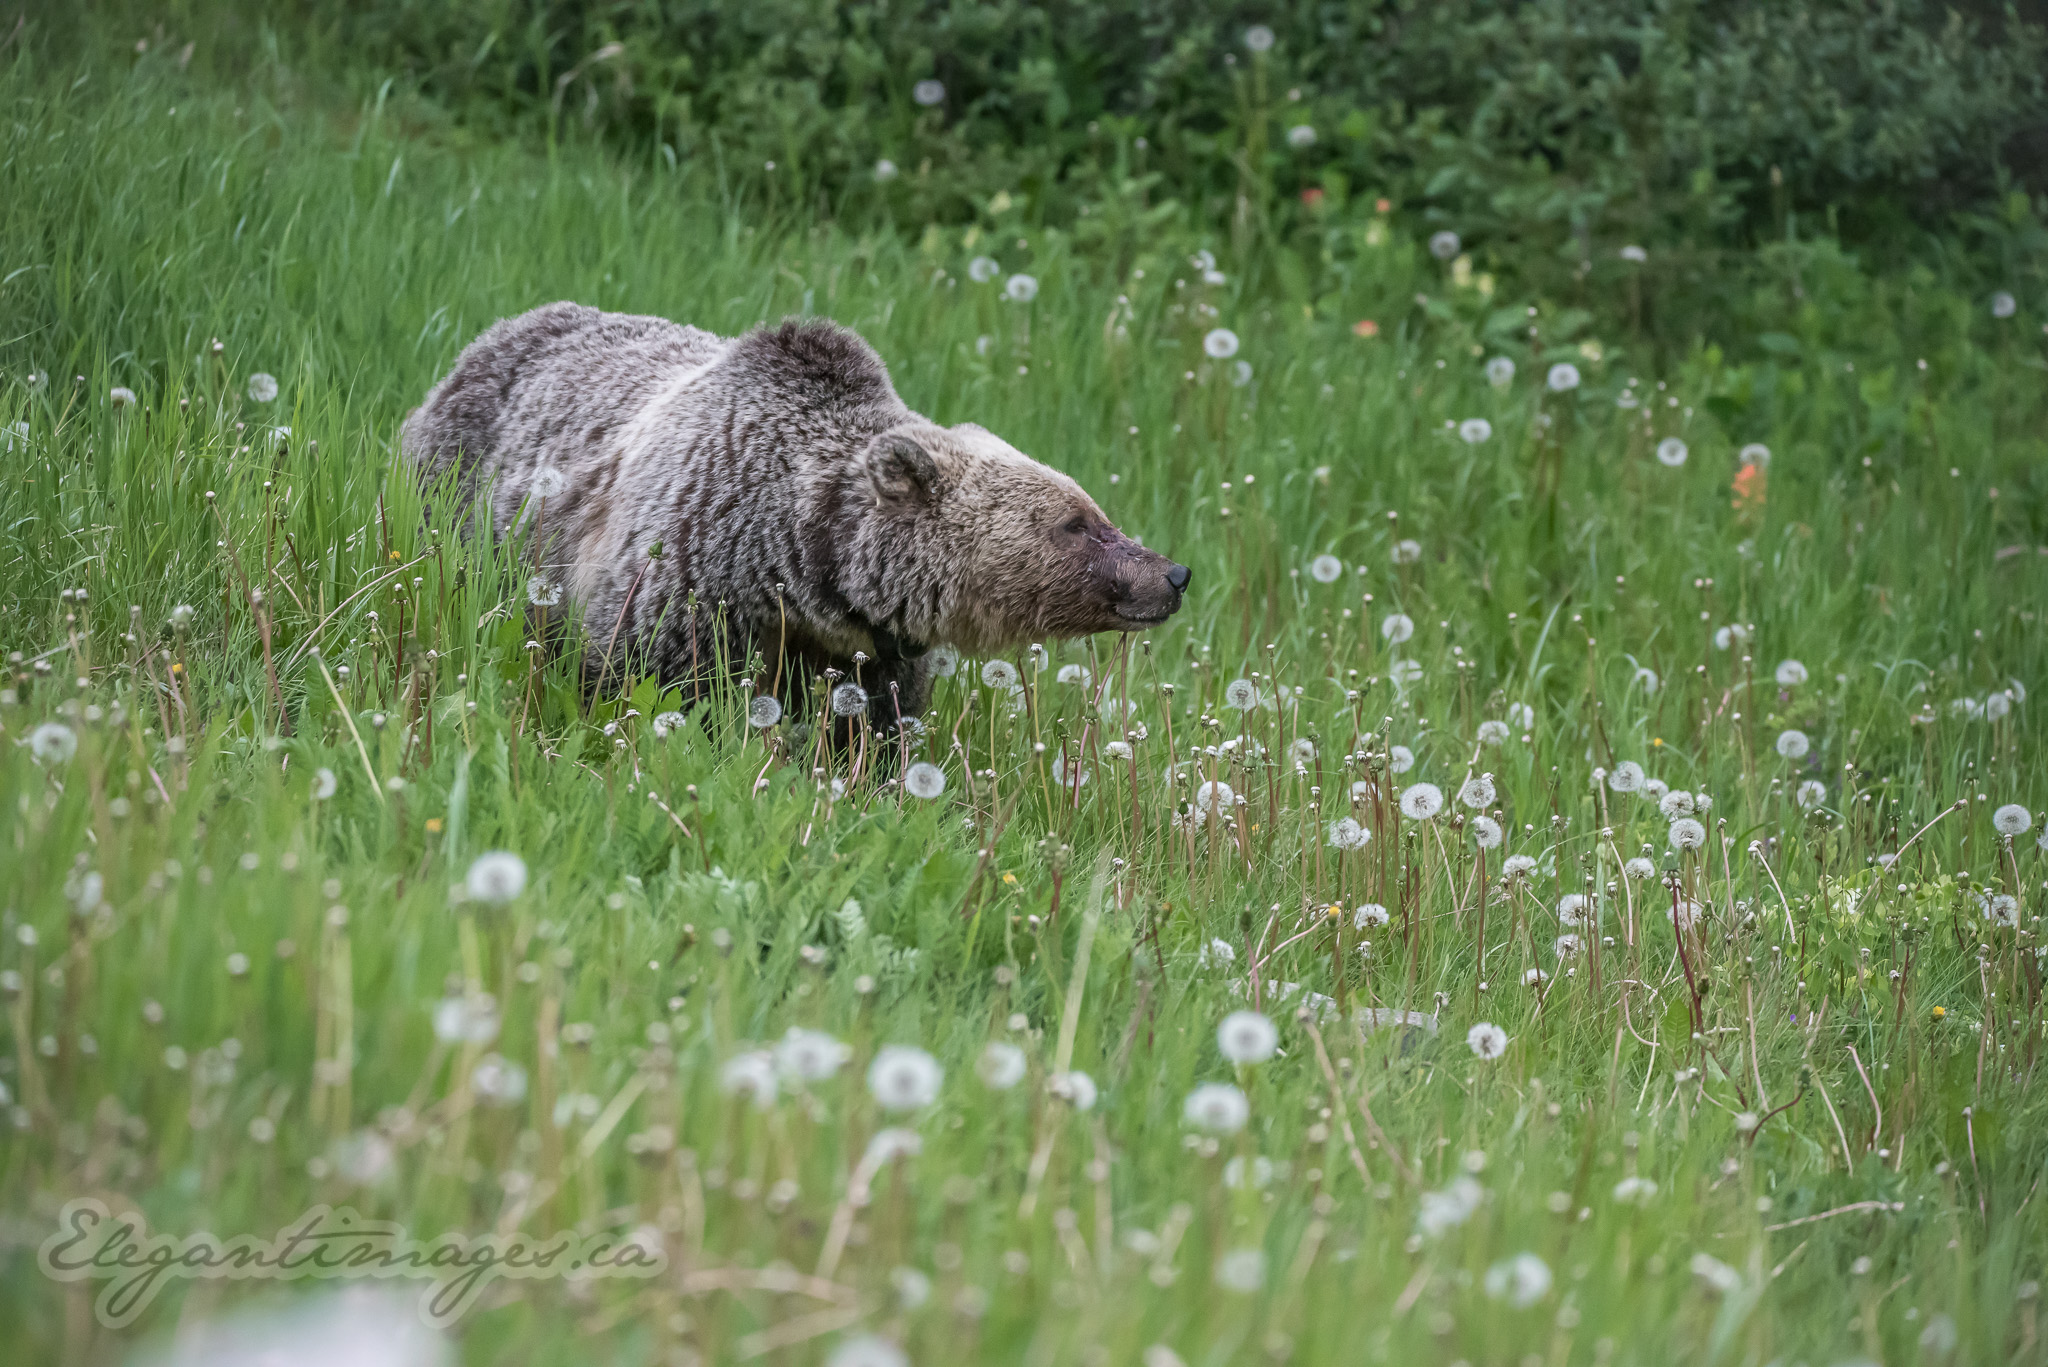 Grizzly Bear in green field